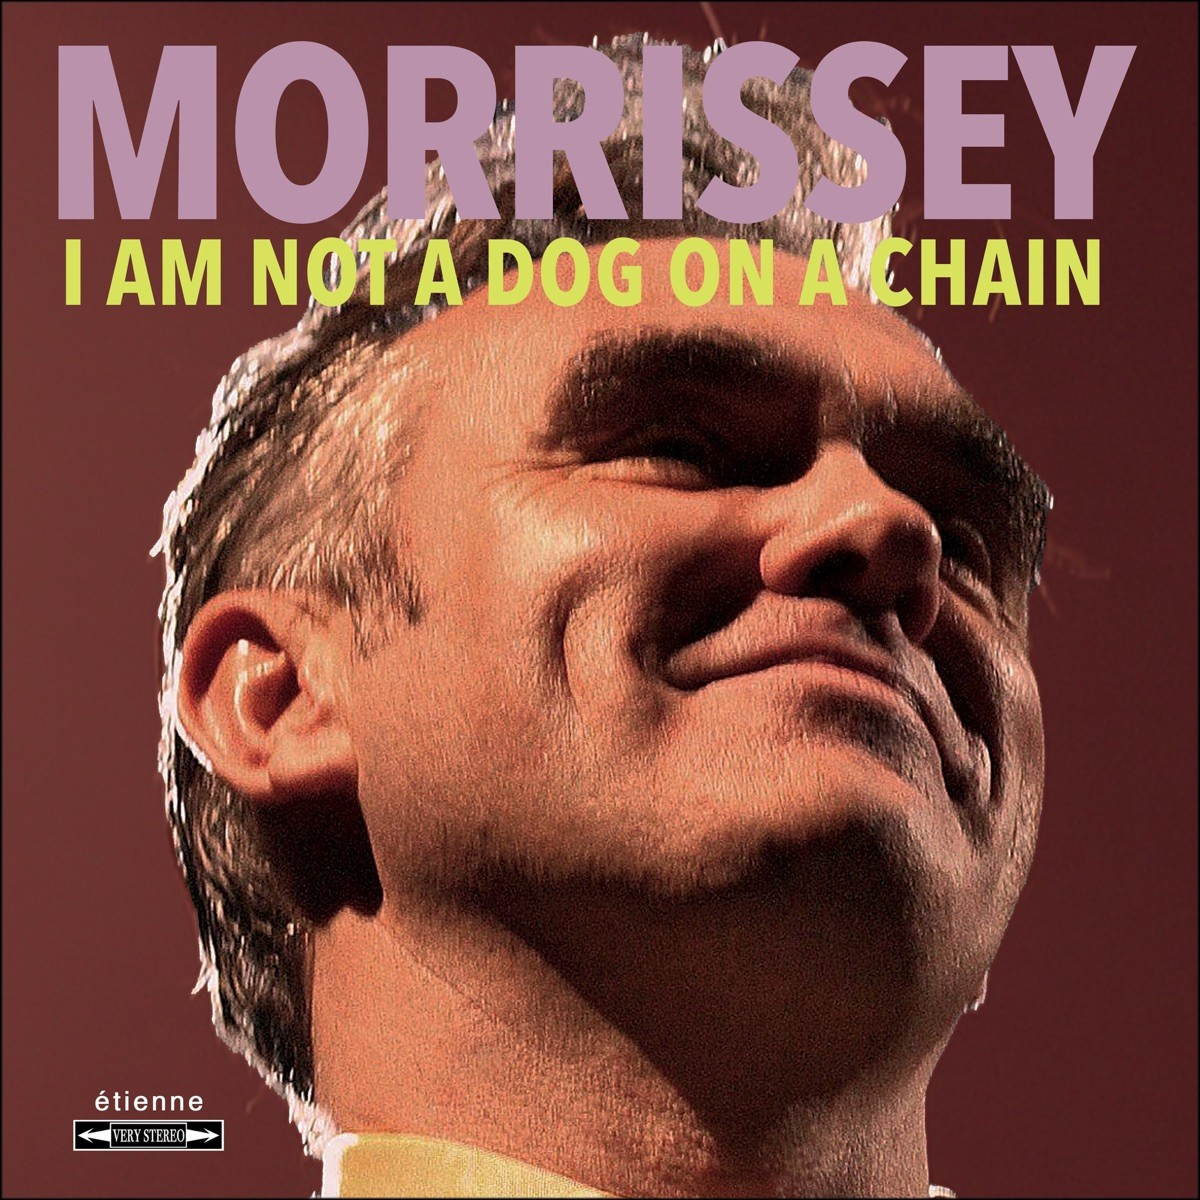 Morrissey - I Am Not a Dog on a Chain VINYL - 5053858941